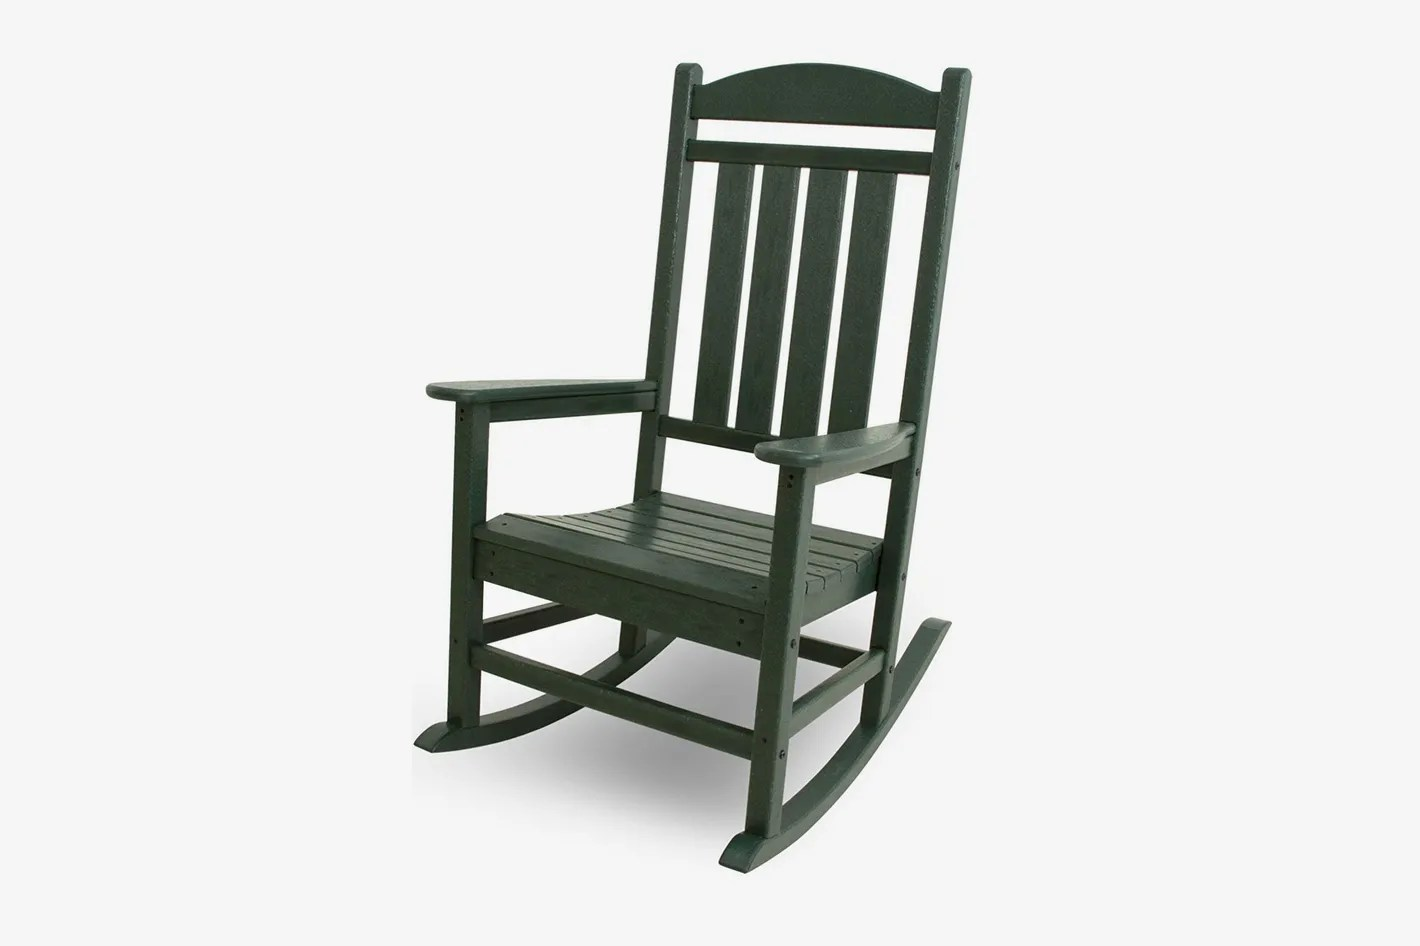 Polywood Rocking Chairs 10 Best Rocking Chairs 2019